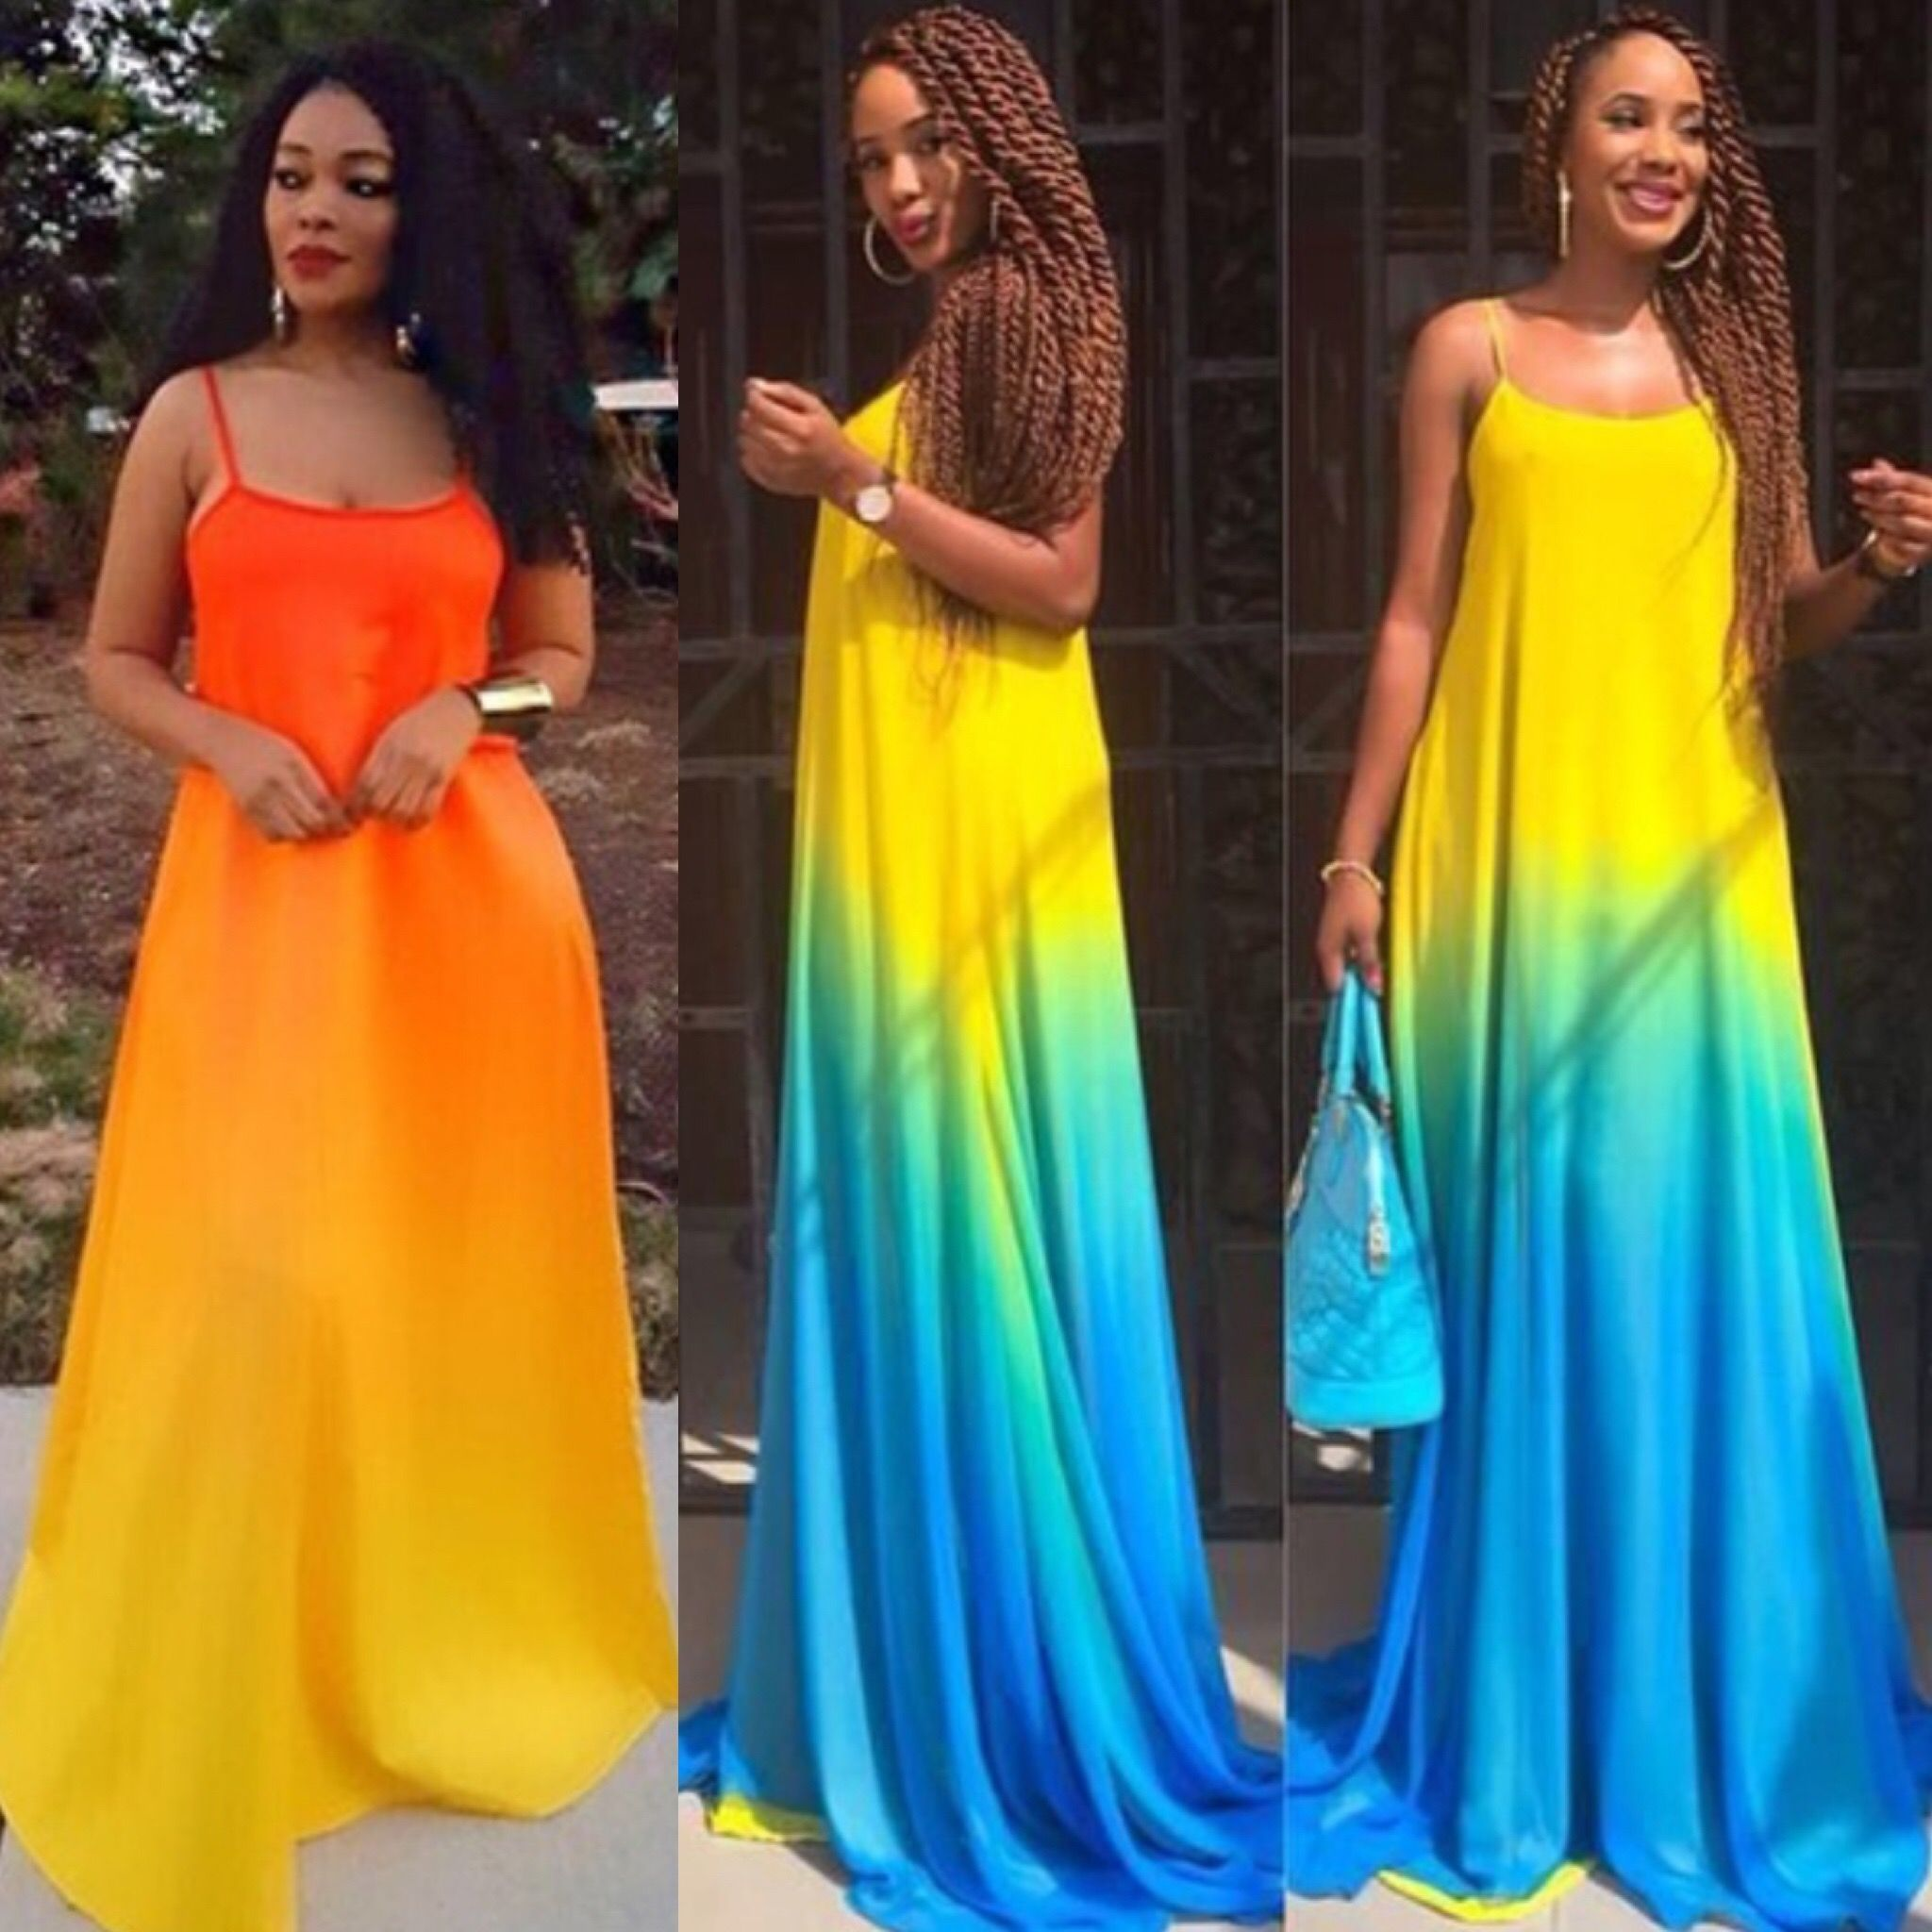 Two Tone Maxi Dress Colors Blue Yellow Orange Yellow Sizes S M L Xl 46 99 Free Shipping Call 469 571 3 Ombre Maxi Dress Maxi Dress Womens Maxi Dresses [ 2048 x 2048 Pixel ]